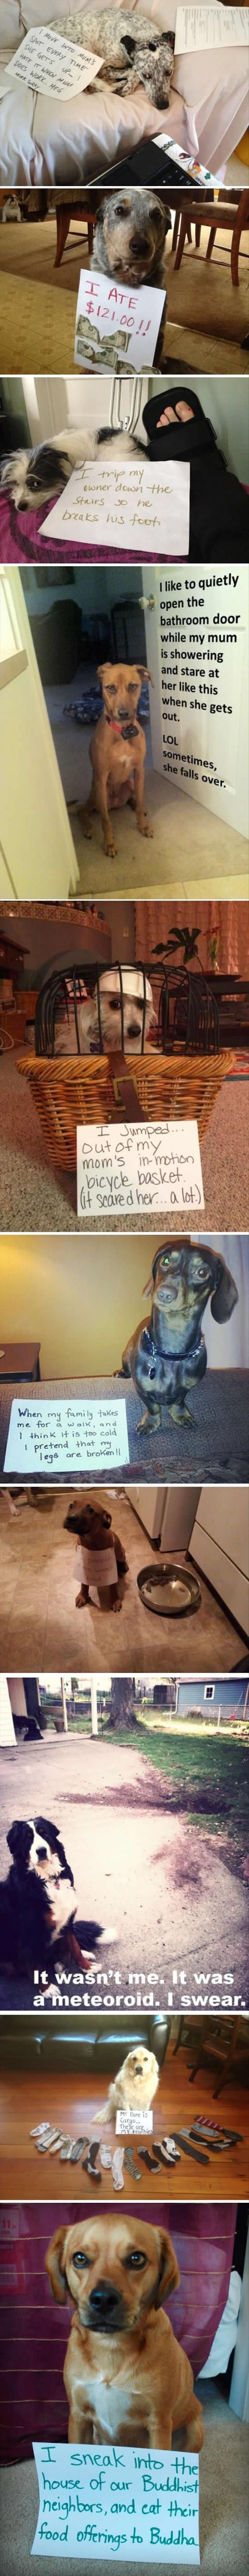 Dog shaming is funny & entertaining! Especially because the dogs have no idea what their owners are doing. Lol